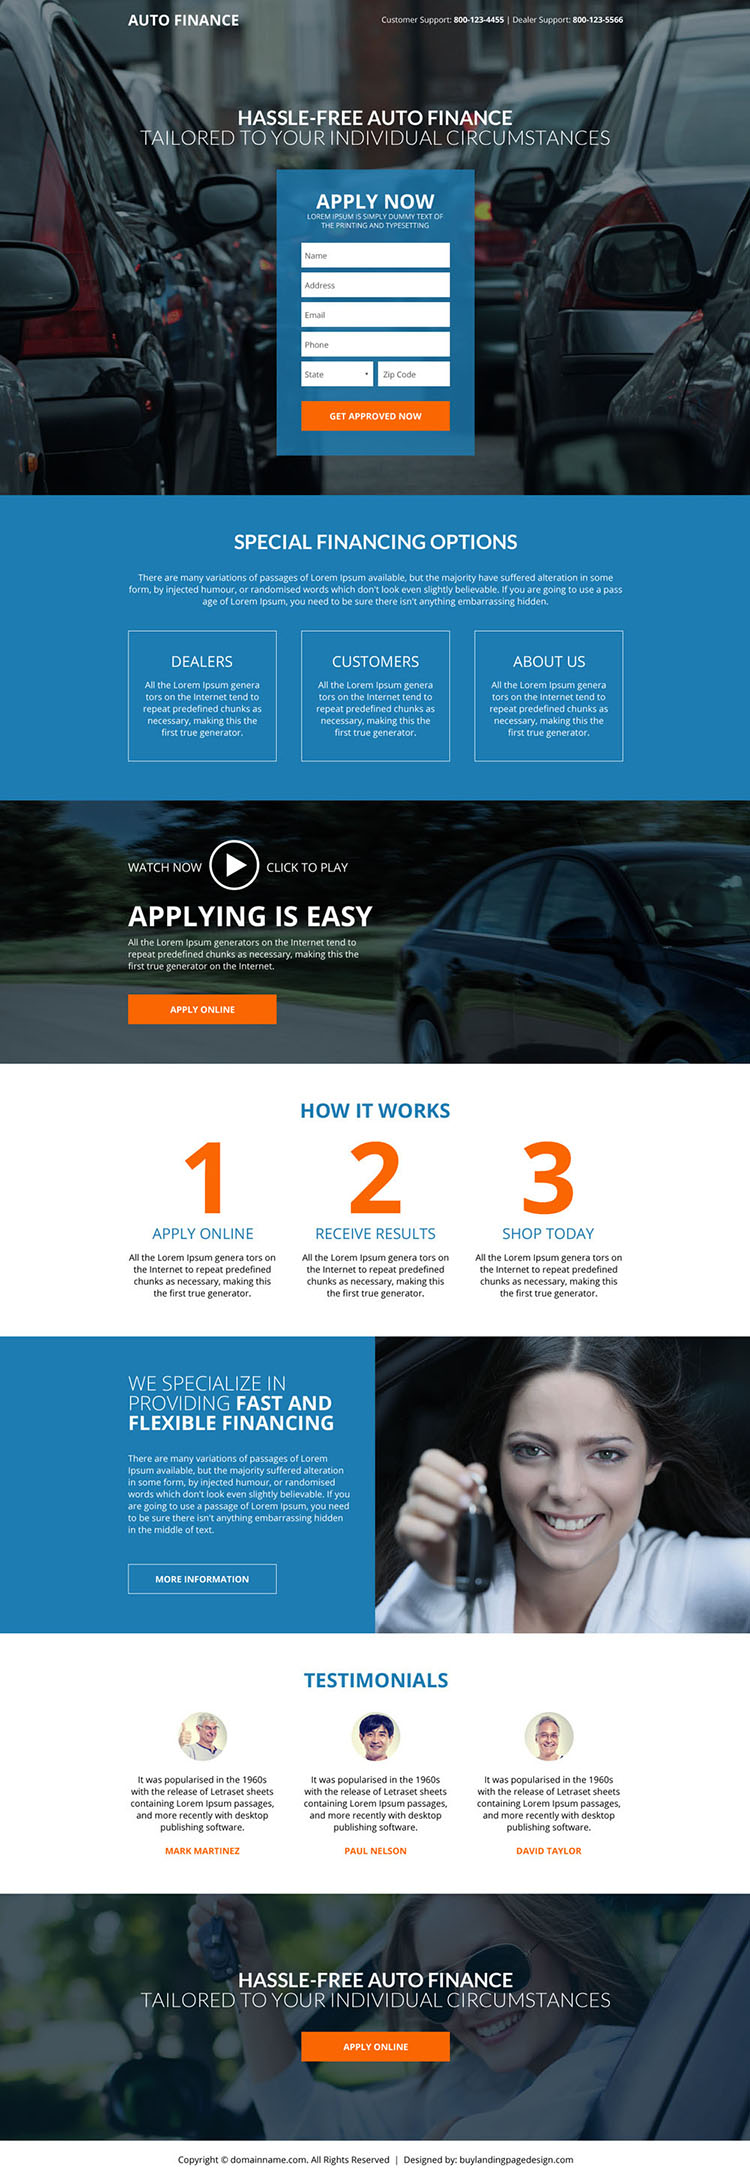 hassle free auto financing lead generating landing page design